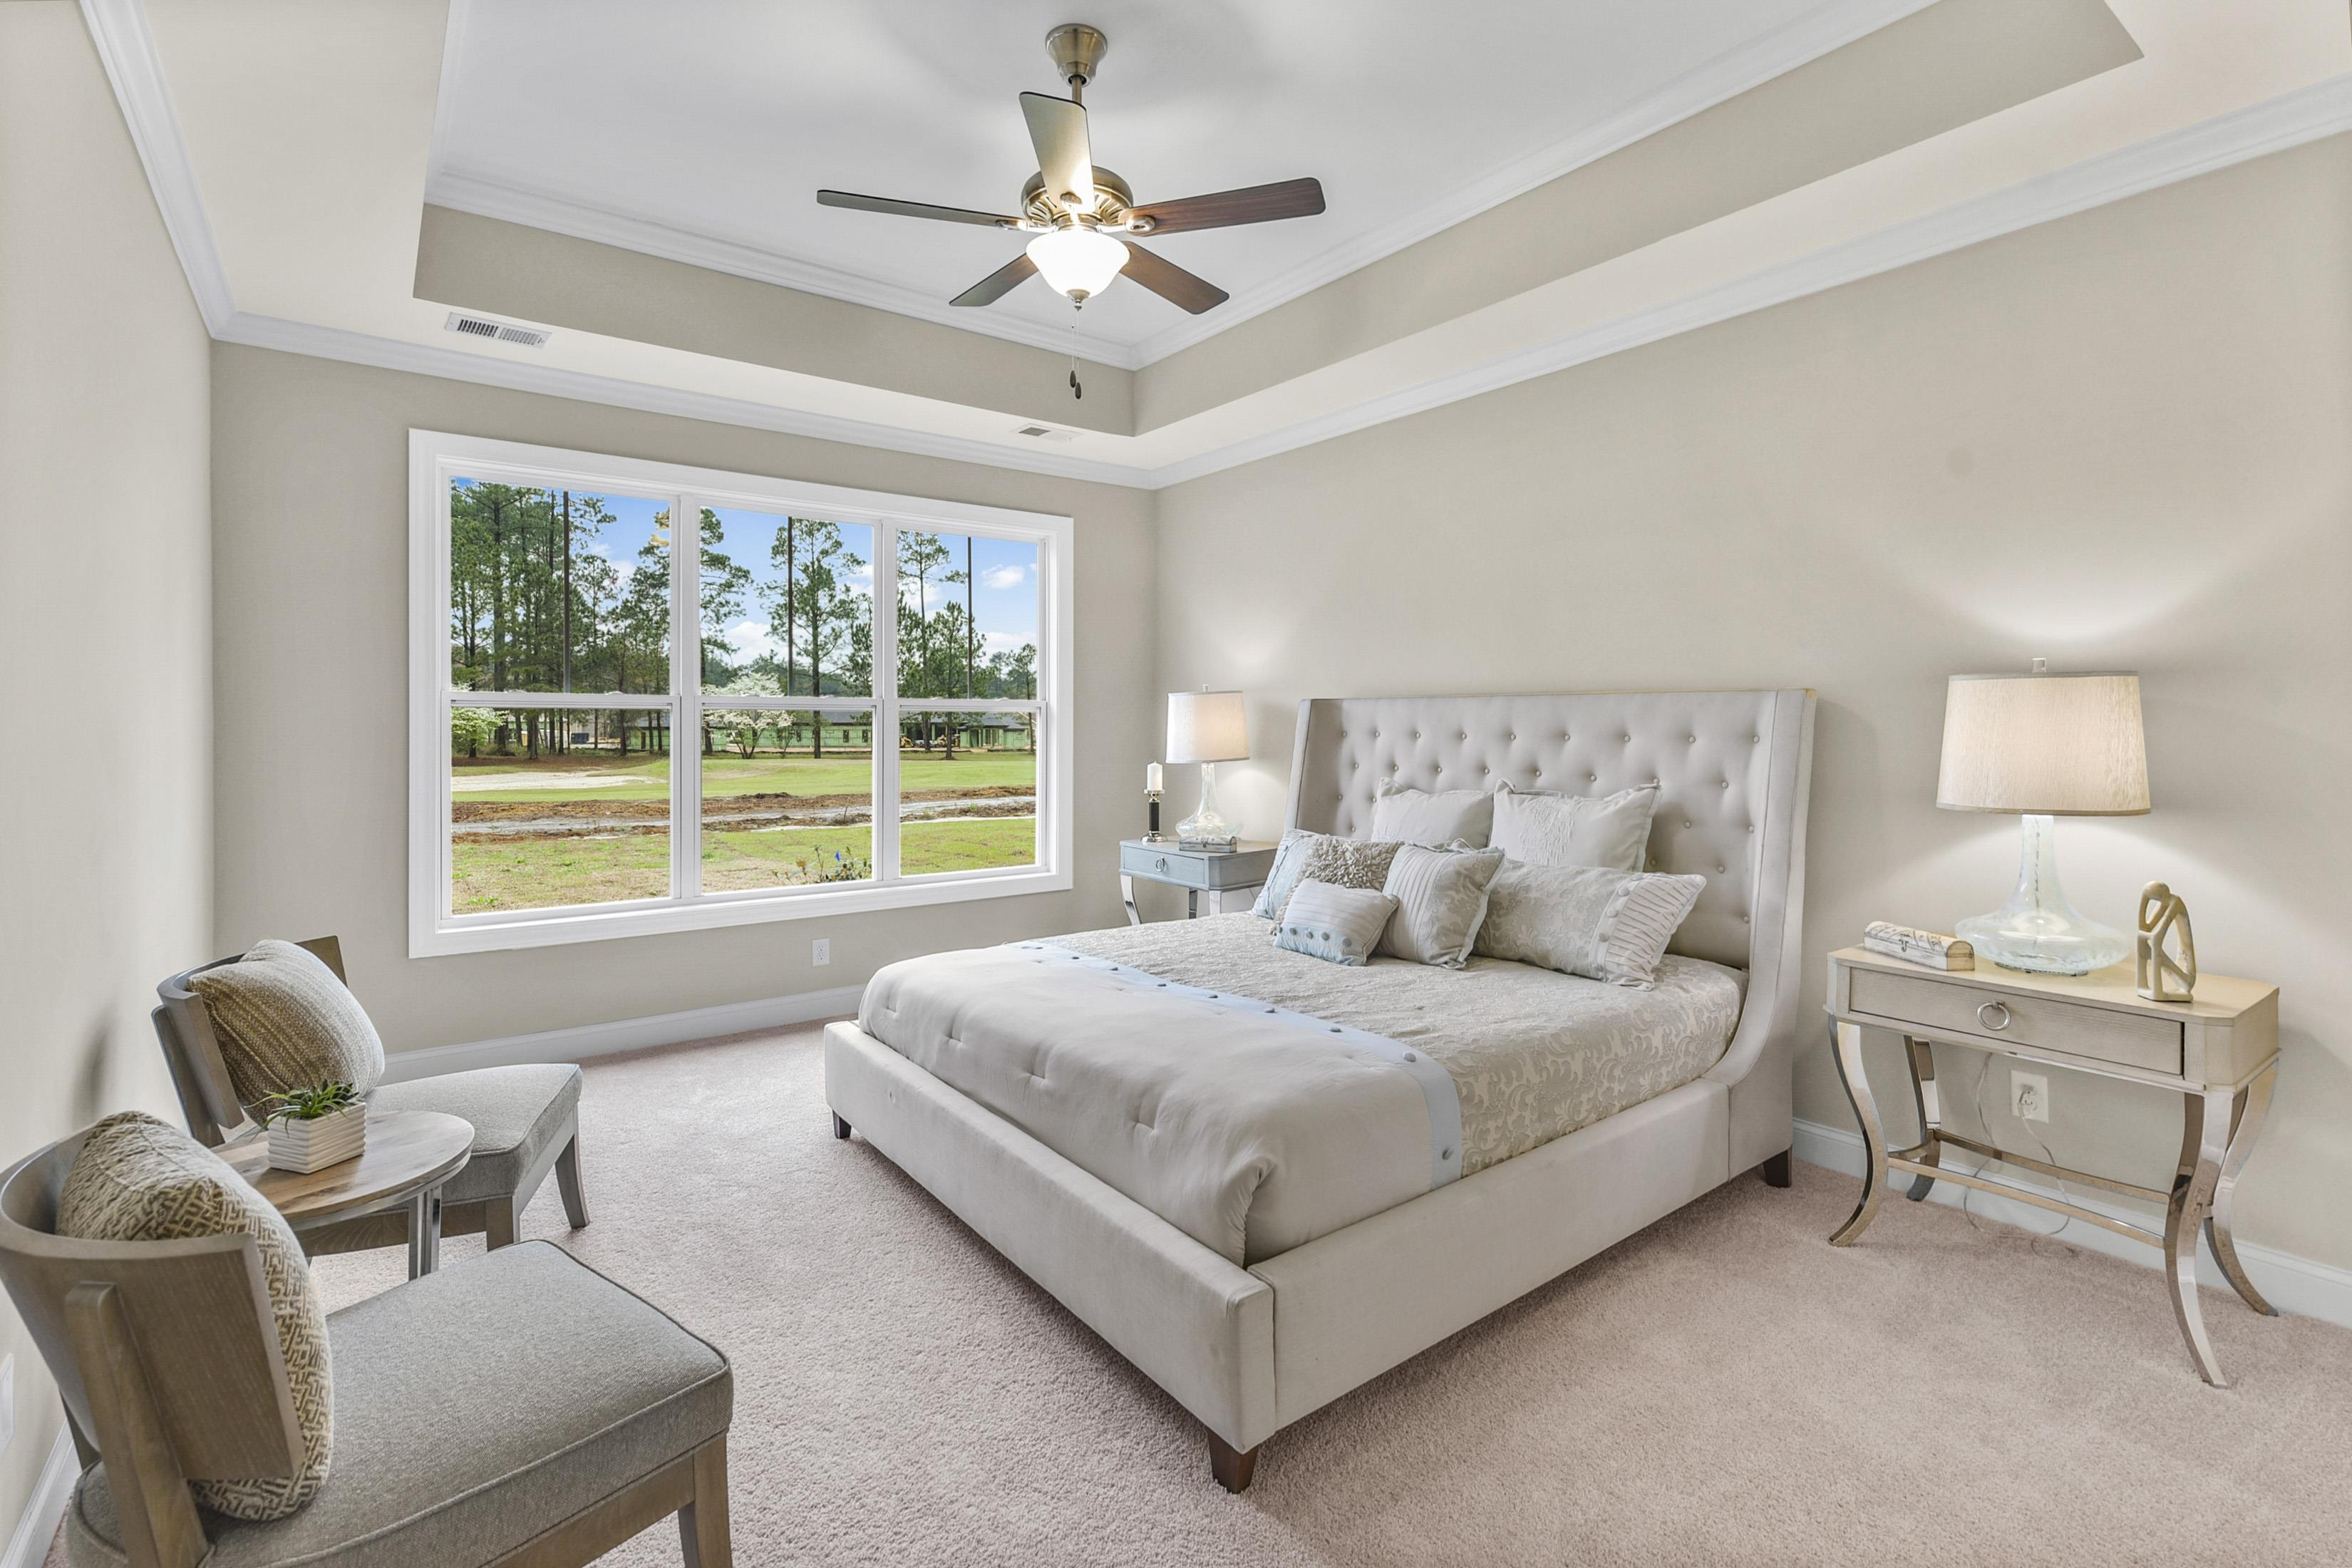 Bedroom featured in the Callawassie- Club Ridge Designer Series By Executive Construction Homes